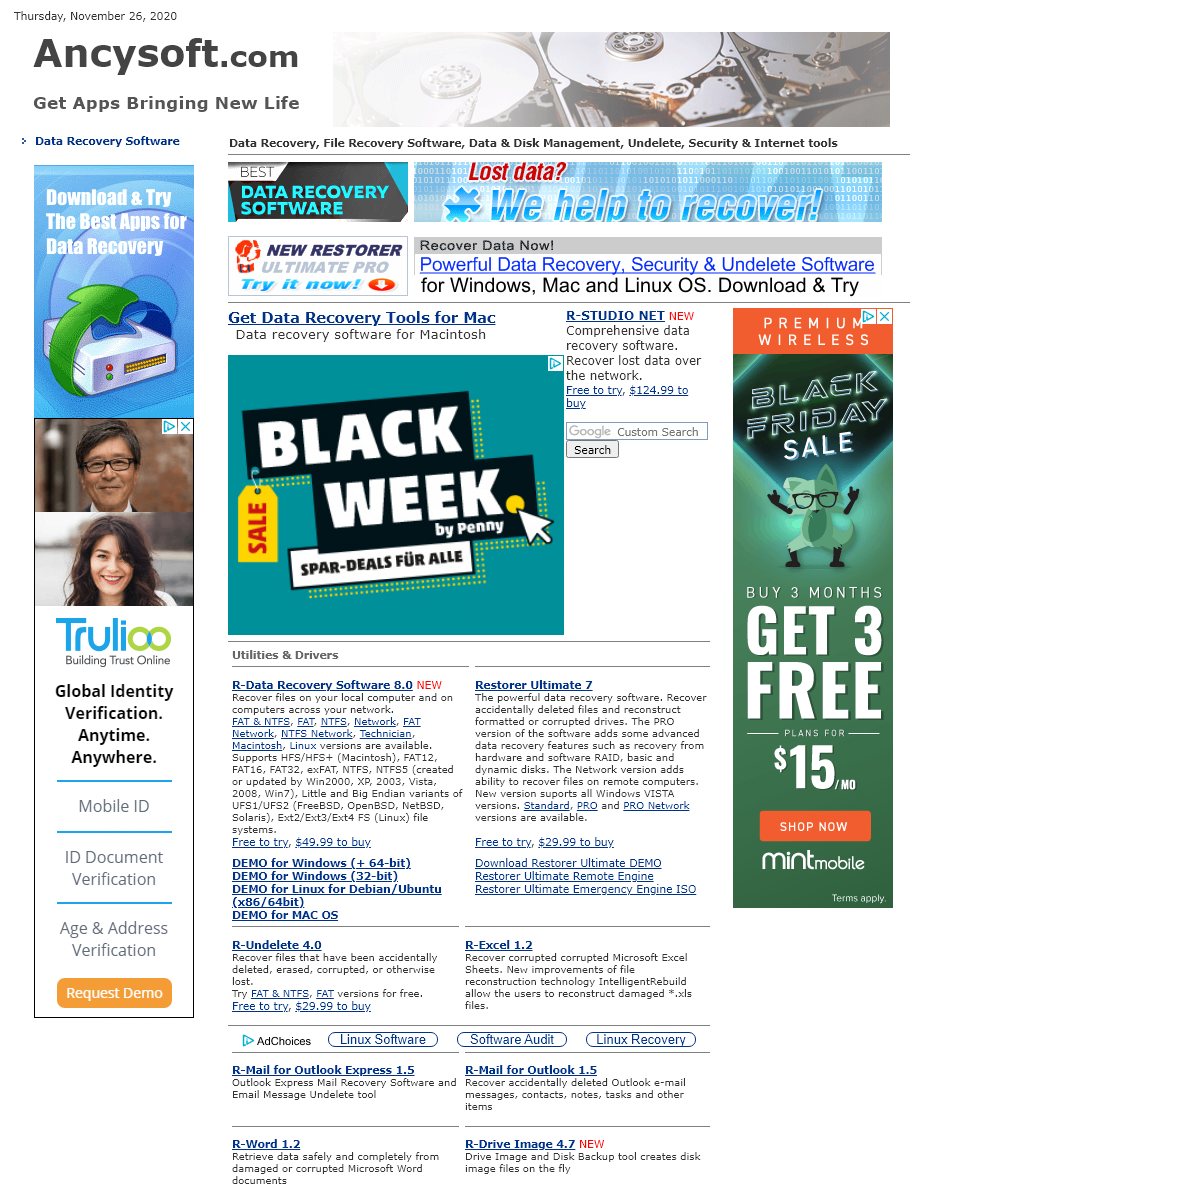 Ancysoft Software. Data Recovery, Data Backup, Security, Internet